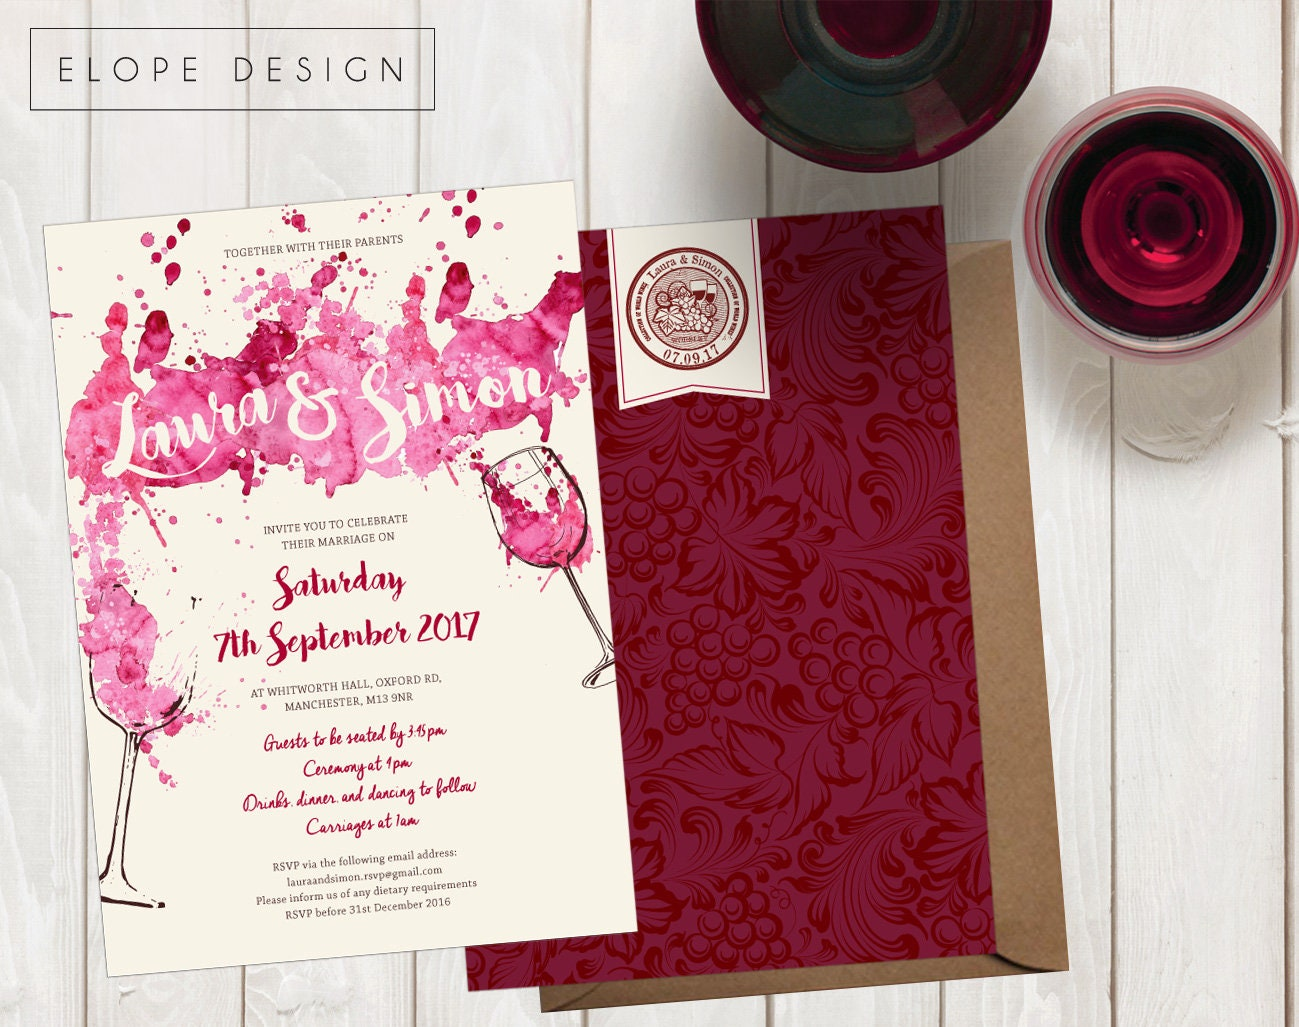 Magnificent Personalised Photo Wedding Invitations Pictures ...